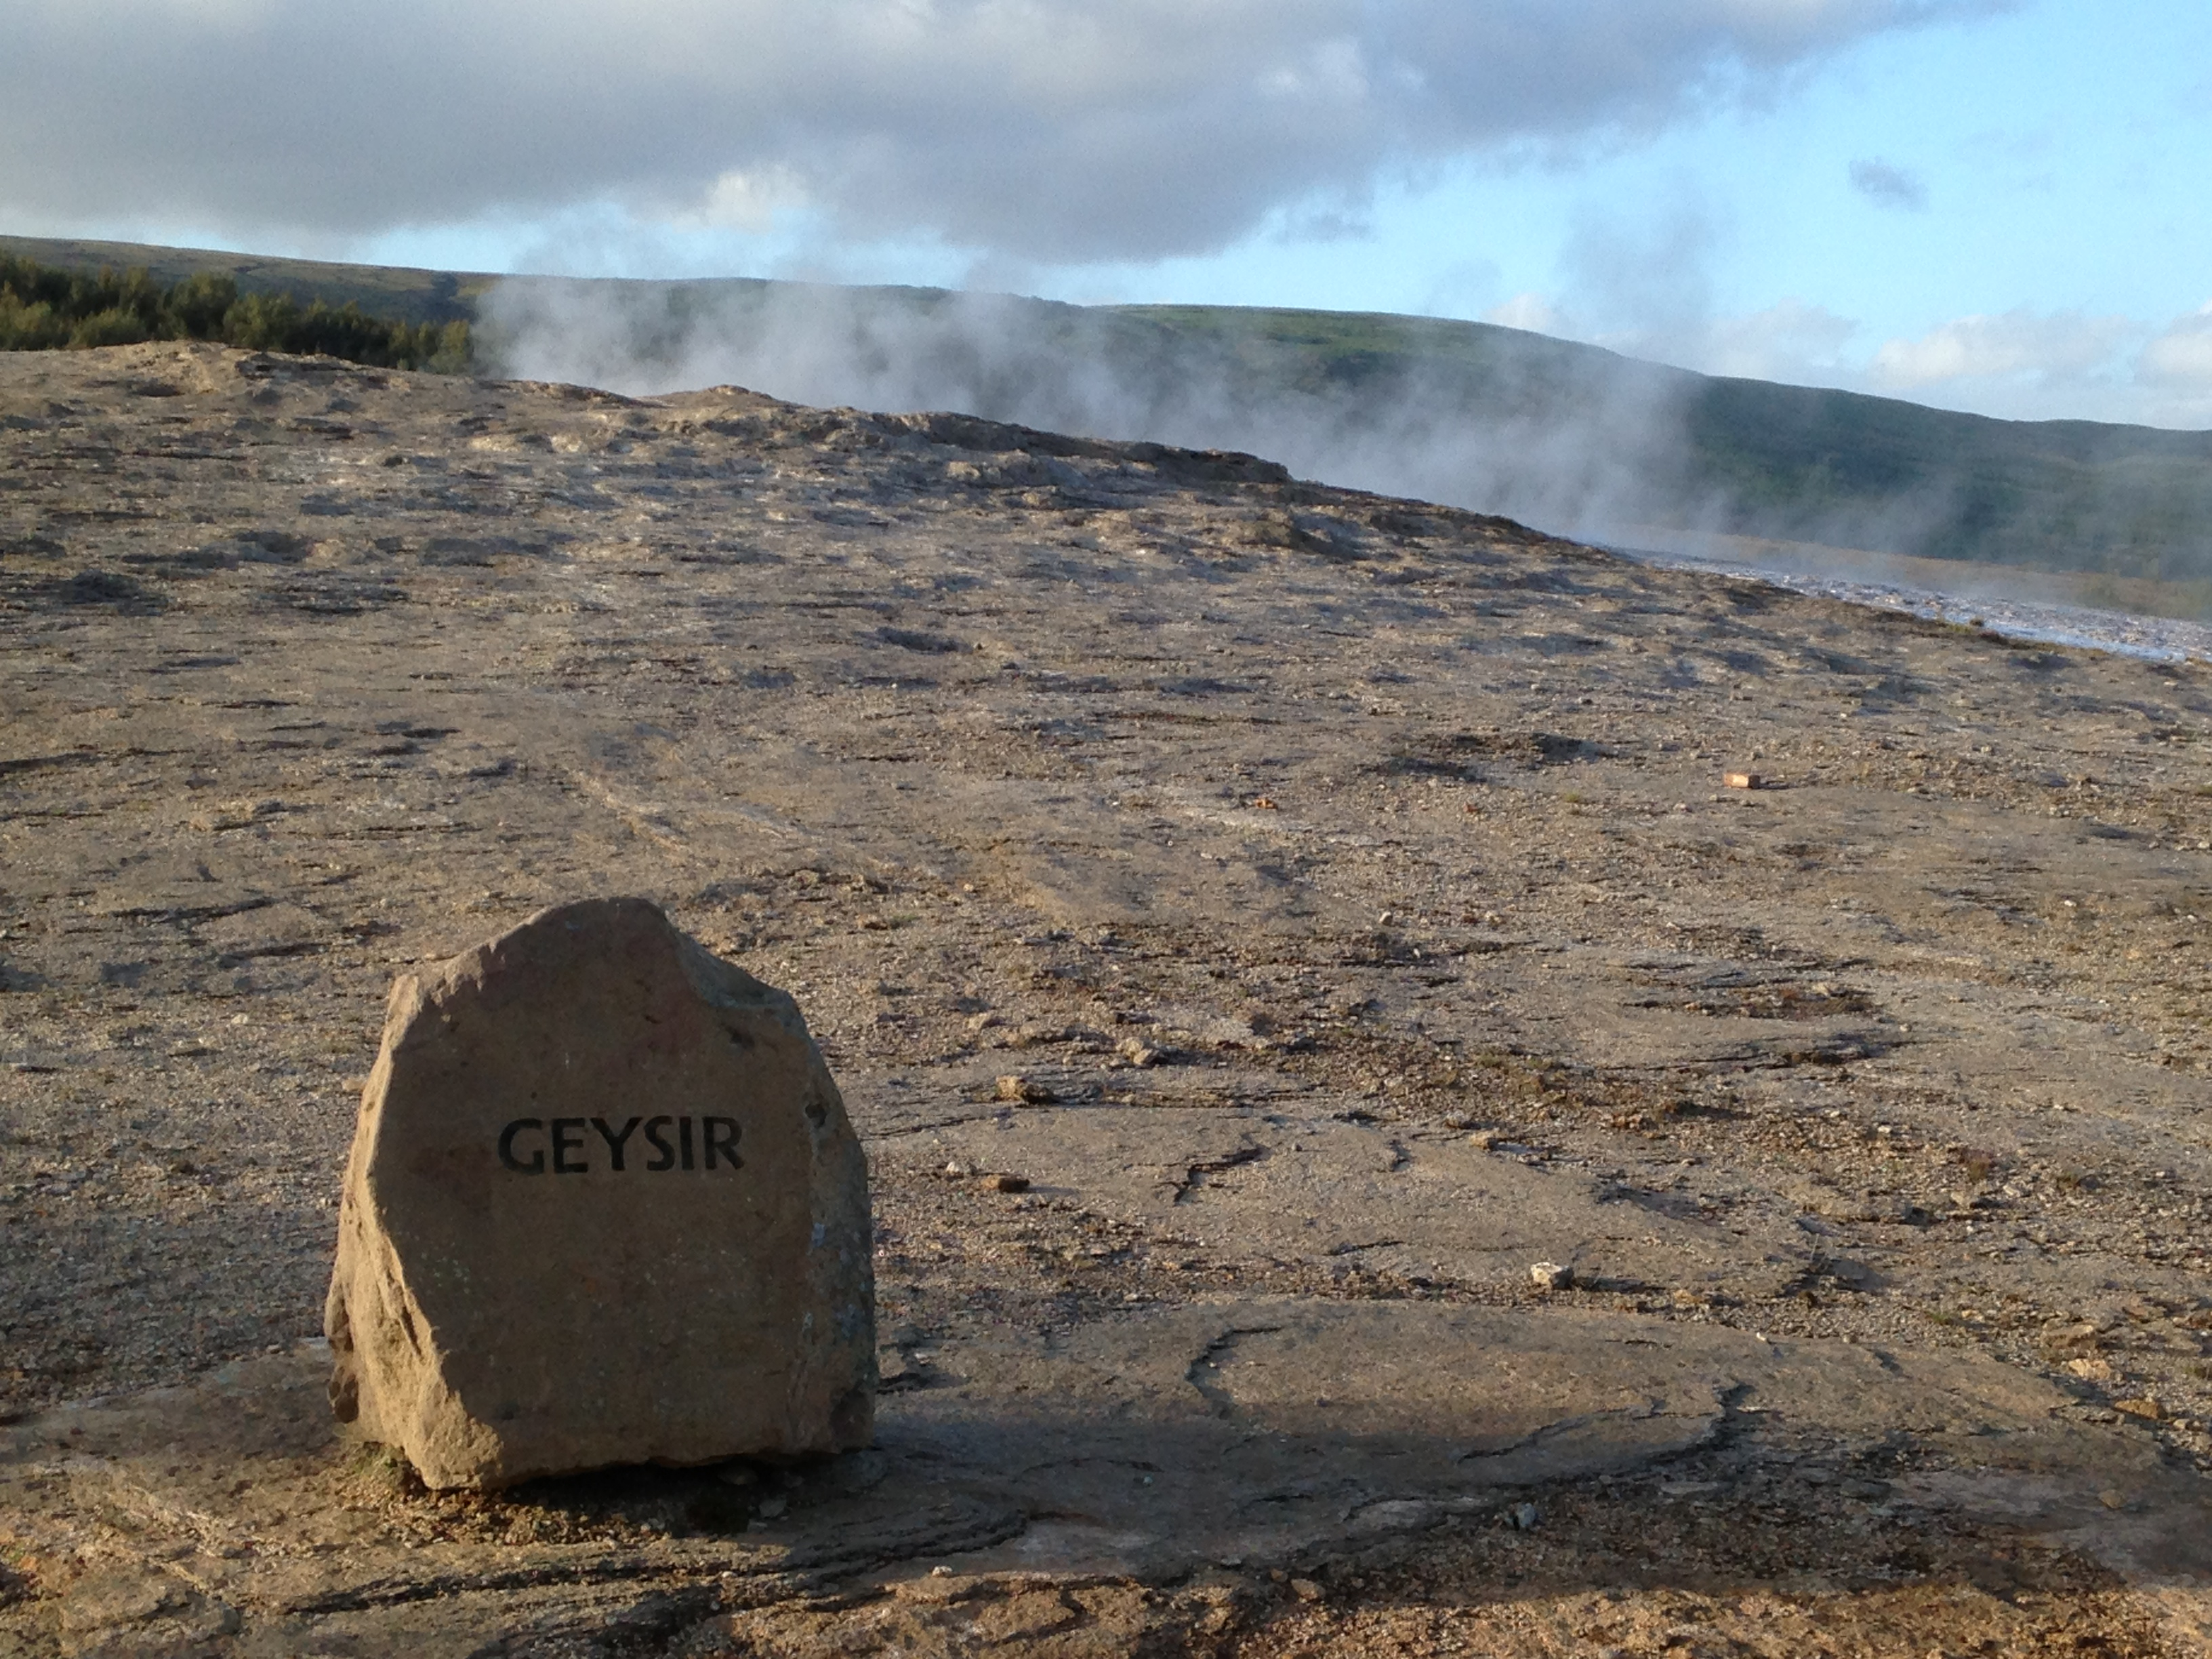 The original Geysir